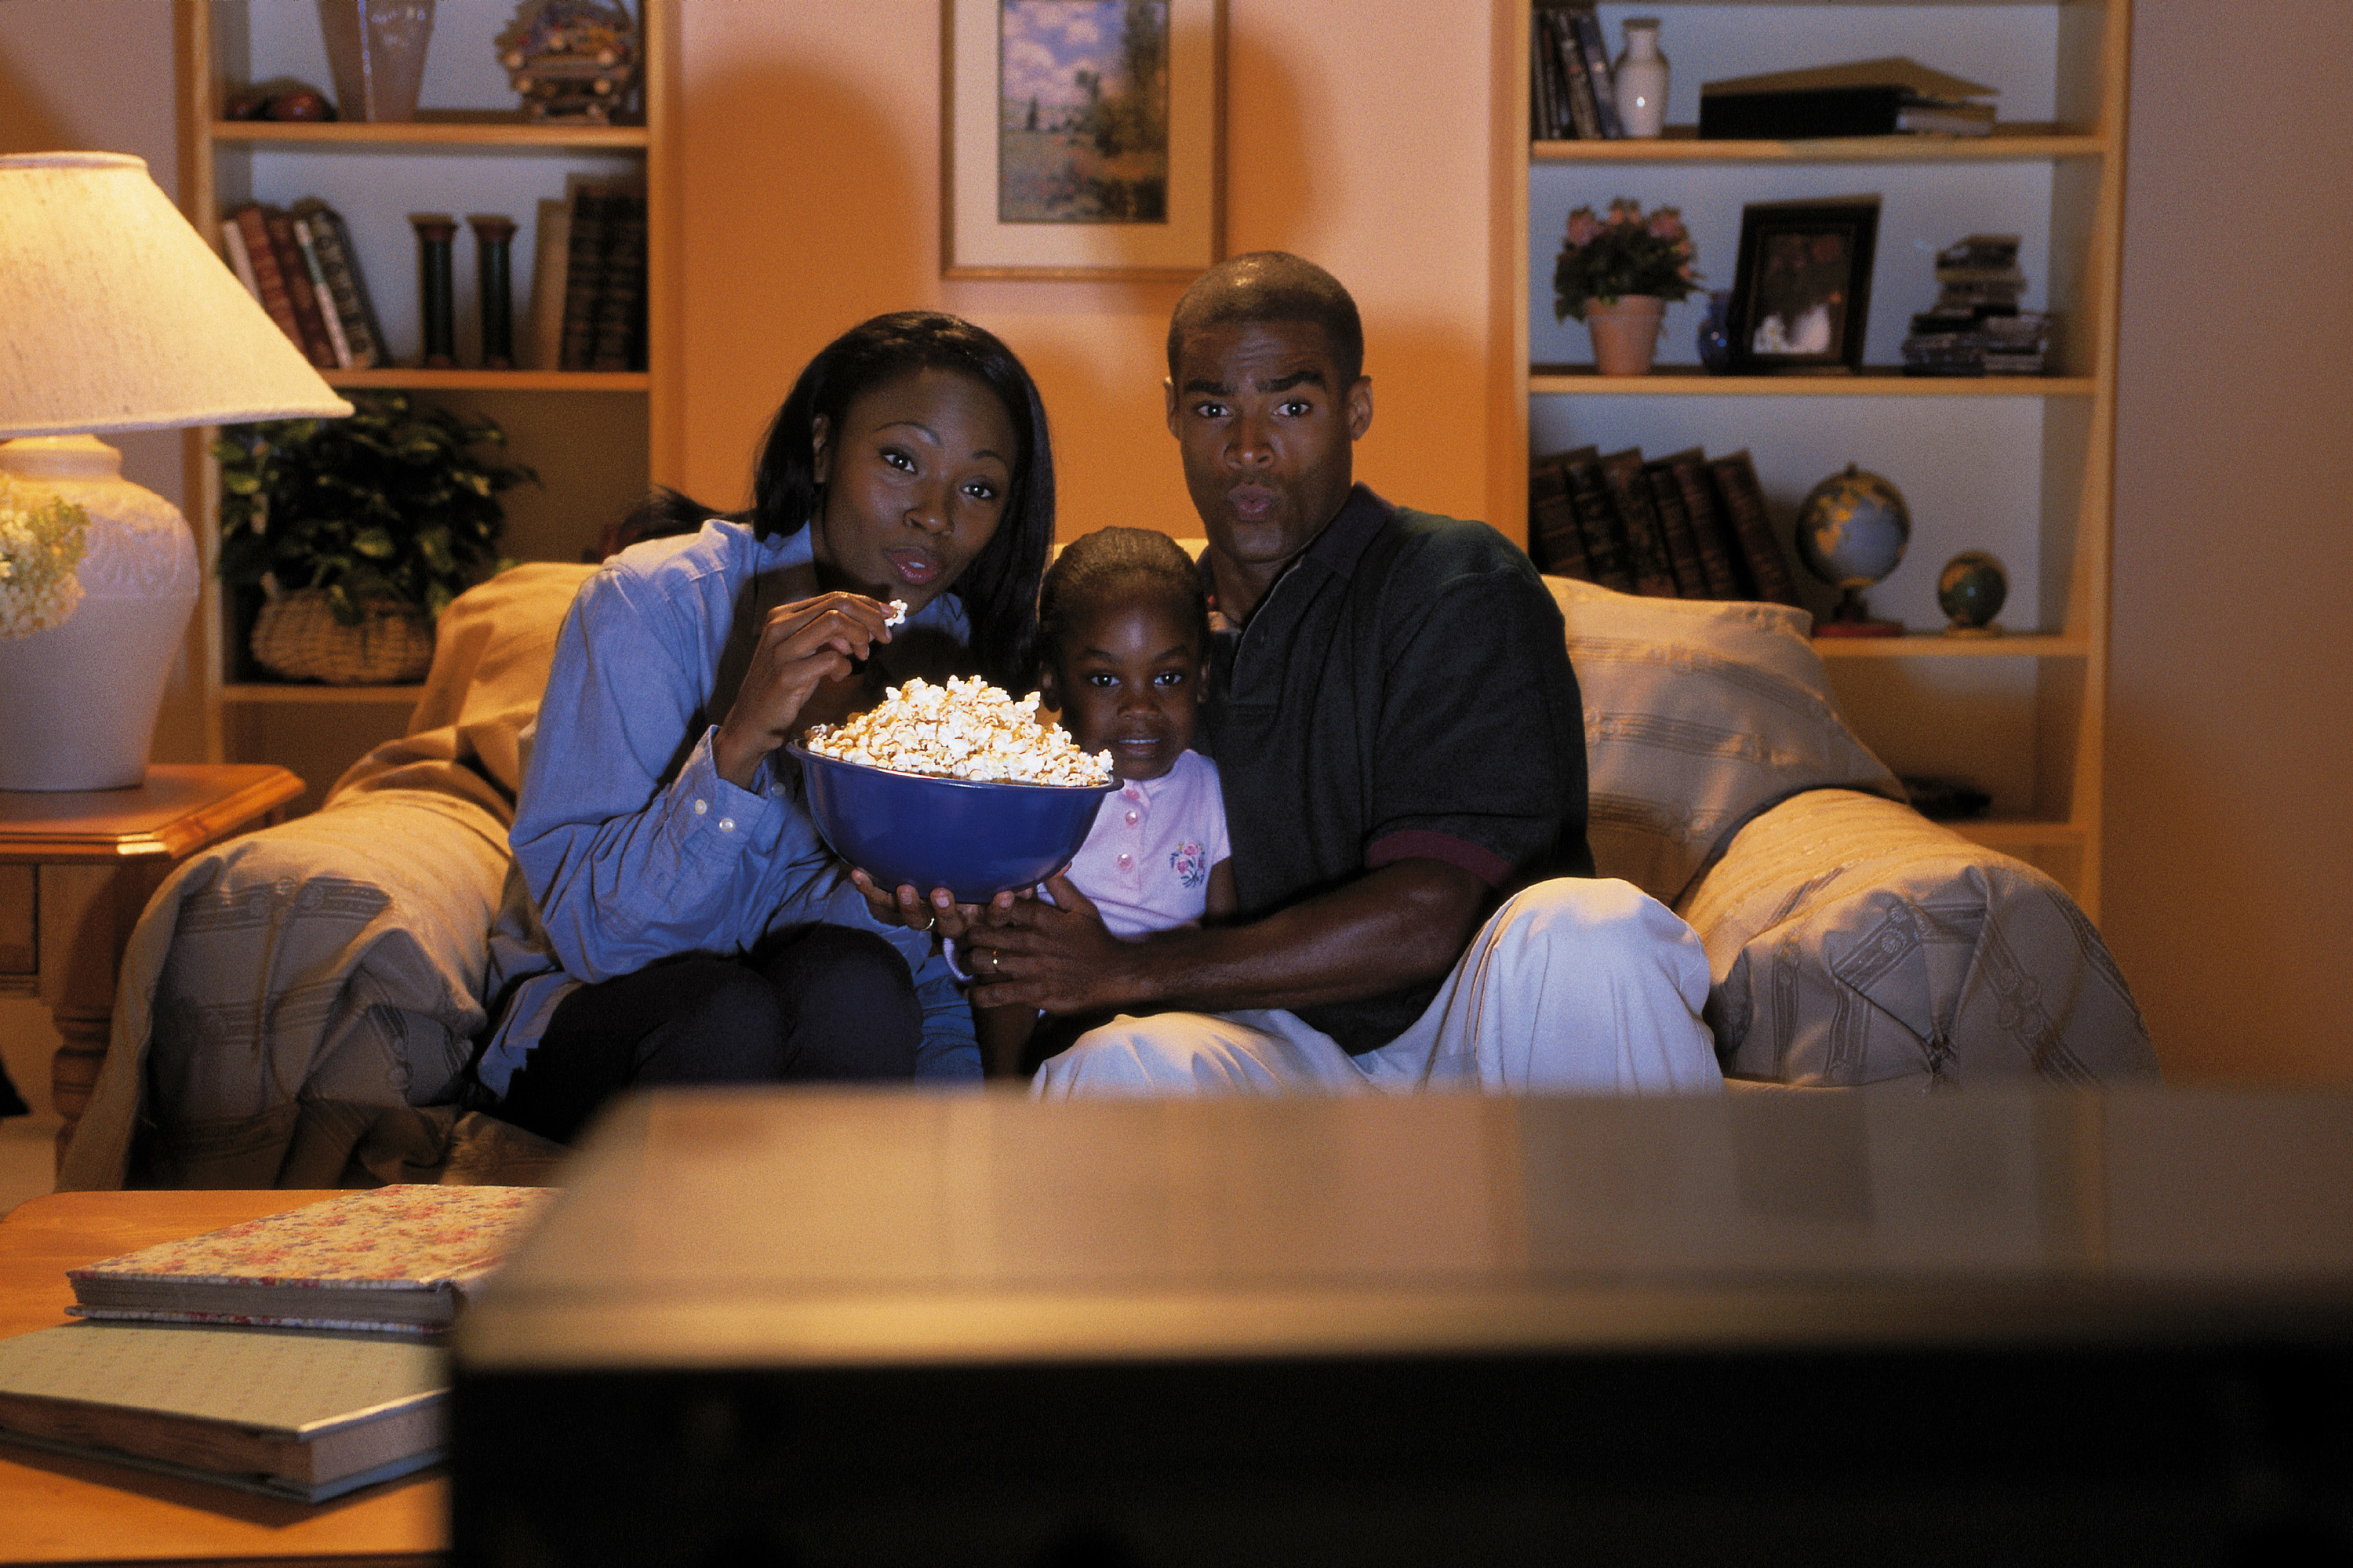 A mom, dad, and their daughter watching a scary movie while eating a popcorn